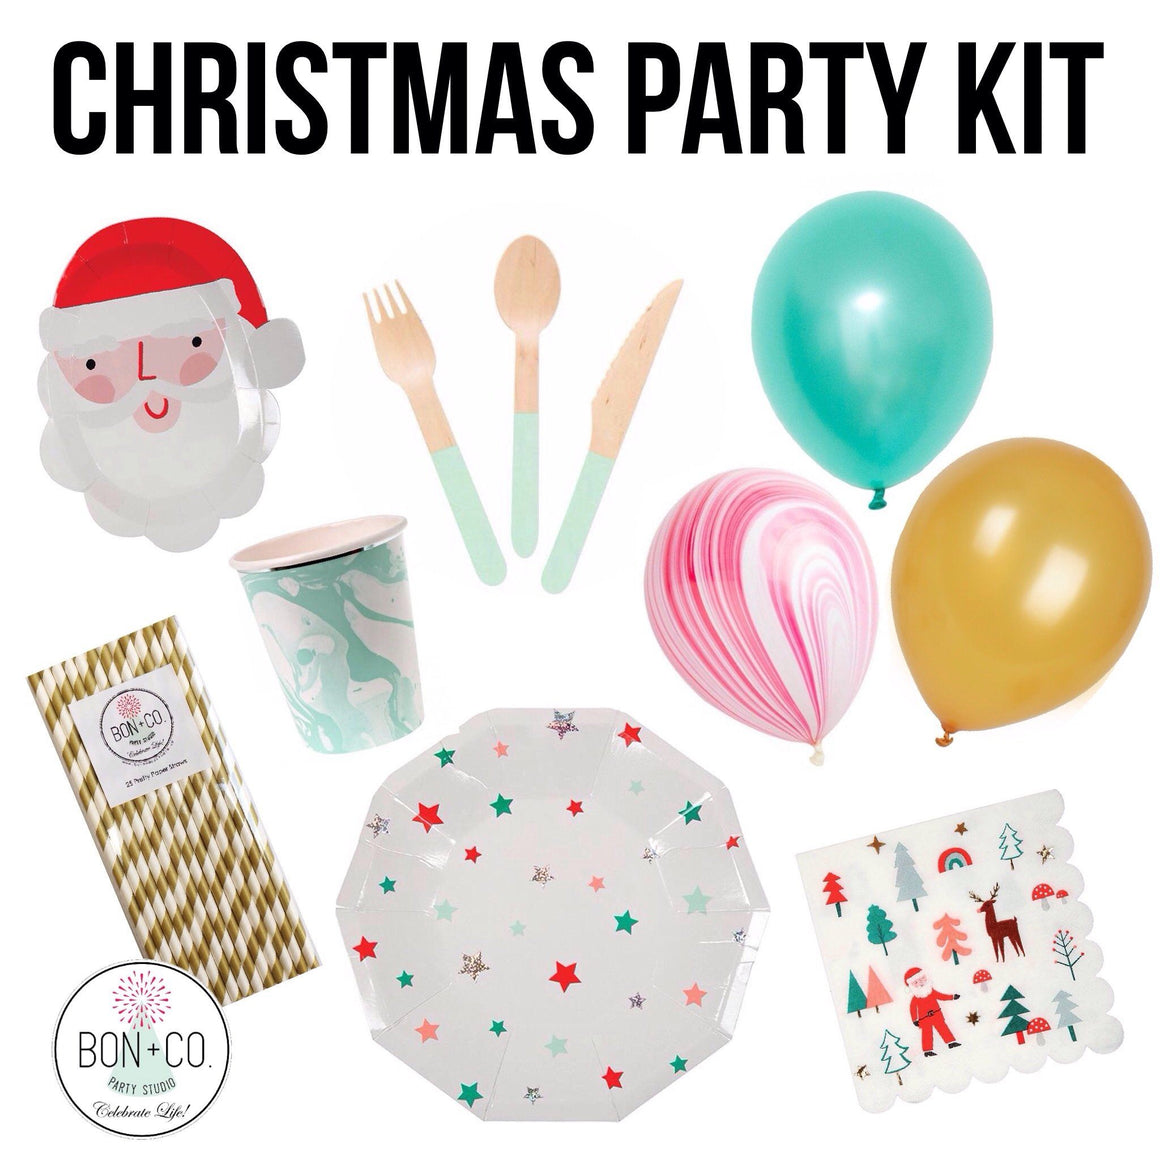 PARTY KIT - CHRISTMAS